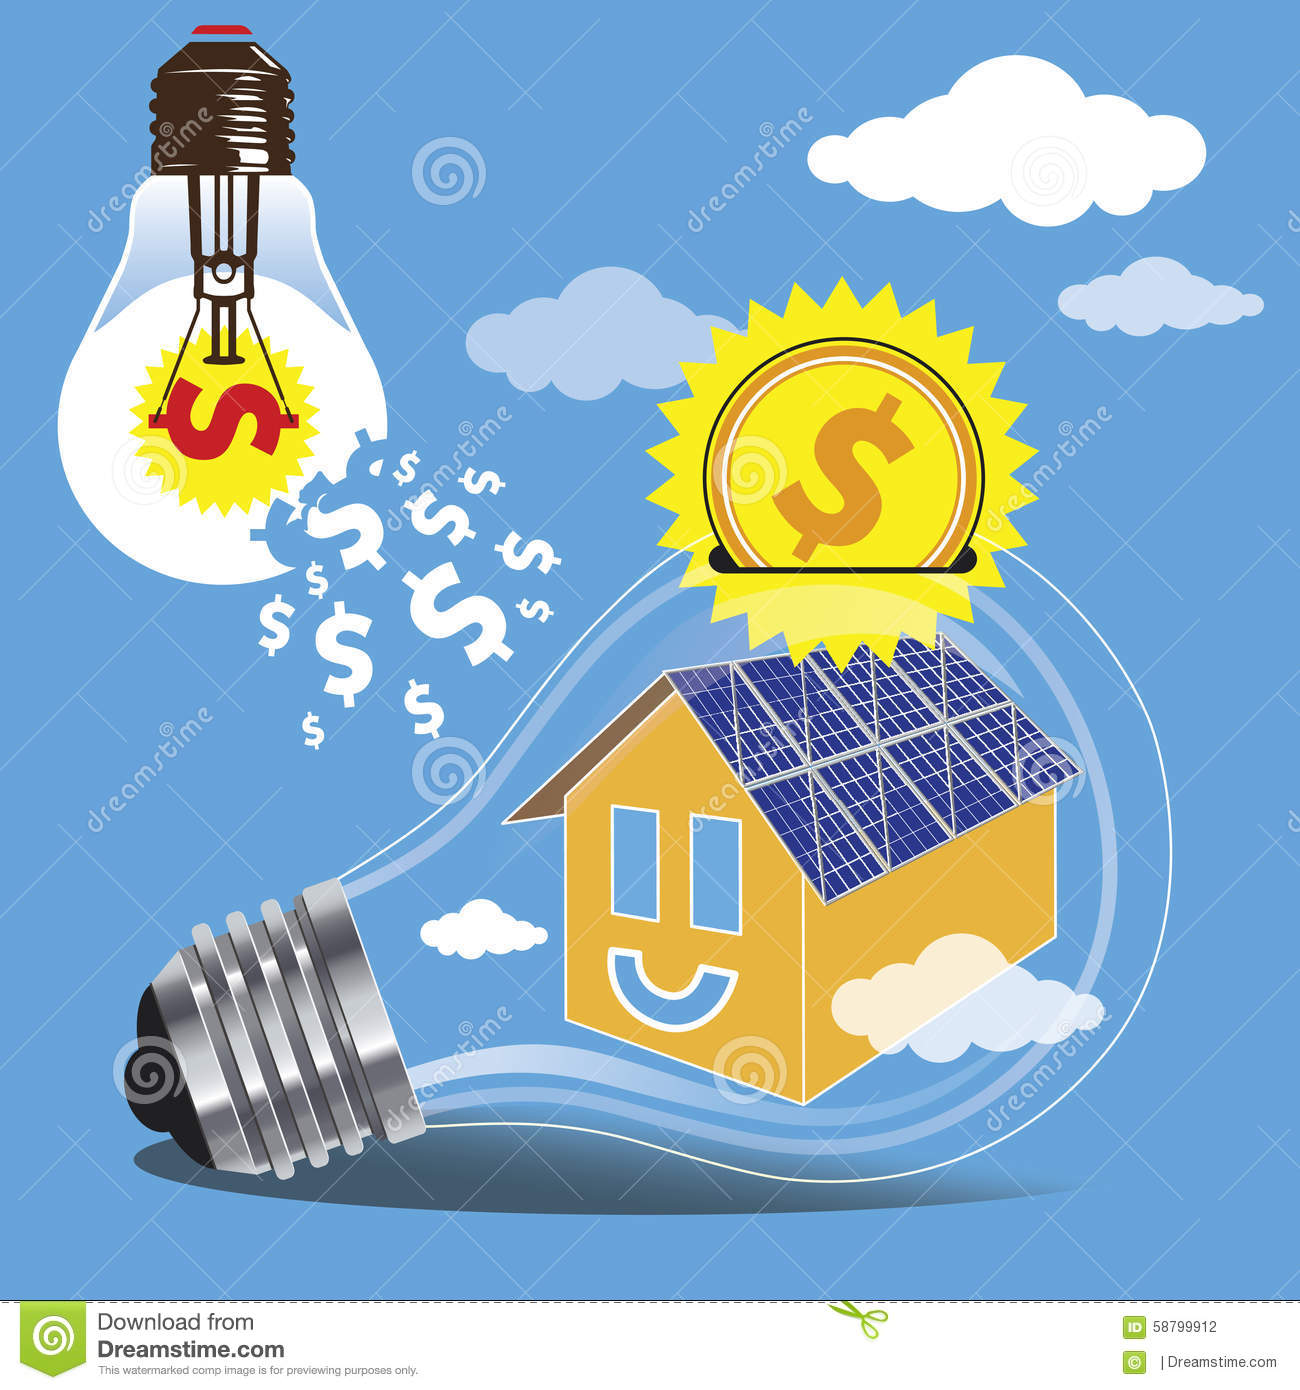 Solar Panel Yearly Savings: Solar Energy Is Money Saving Royalty-Free Stock